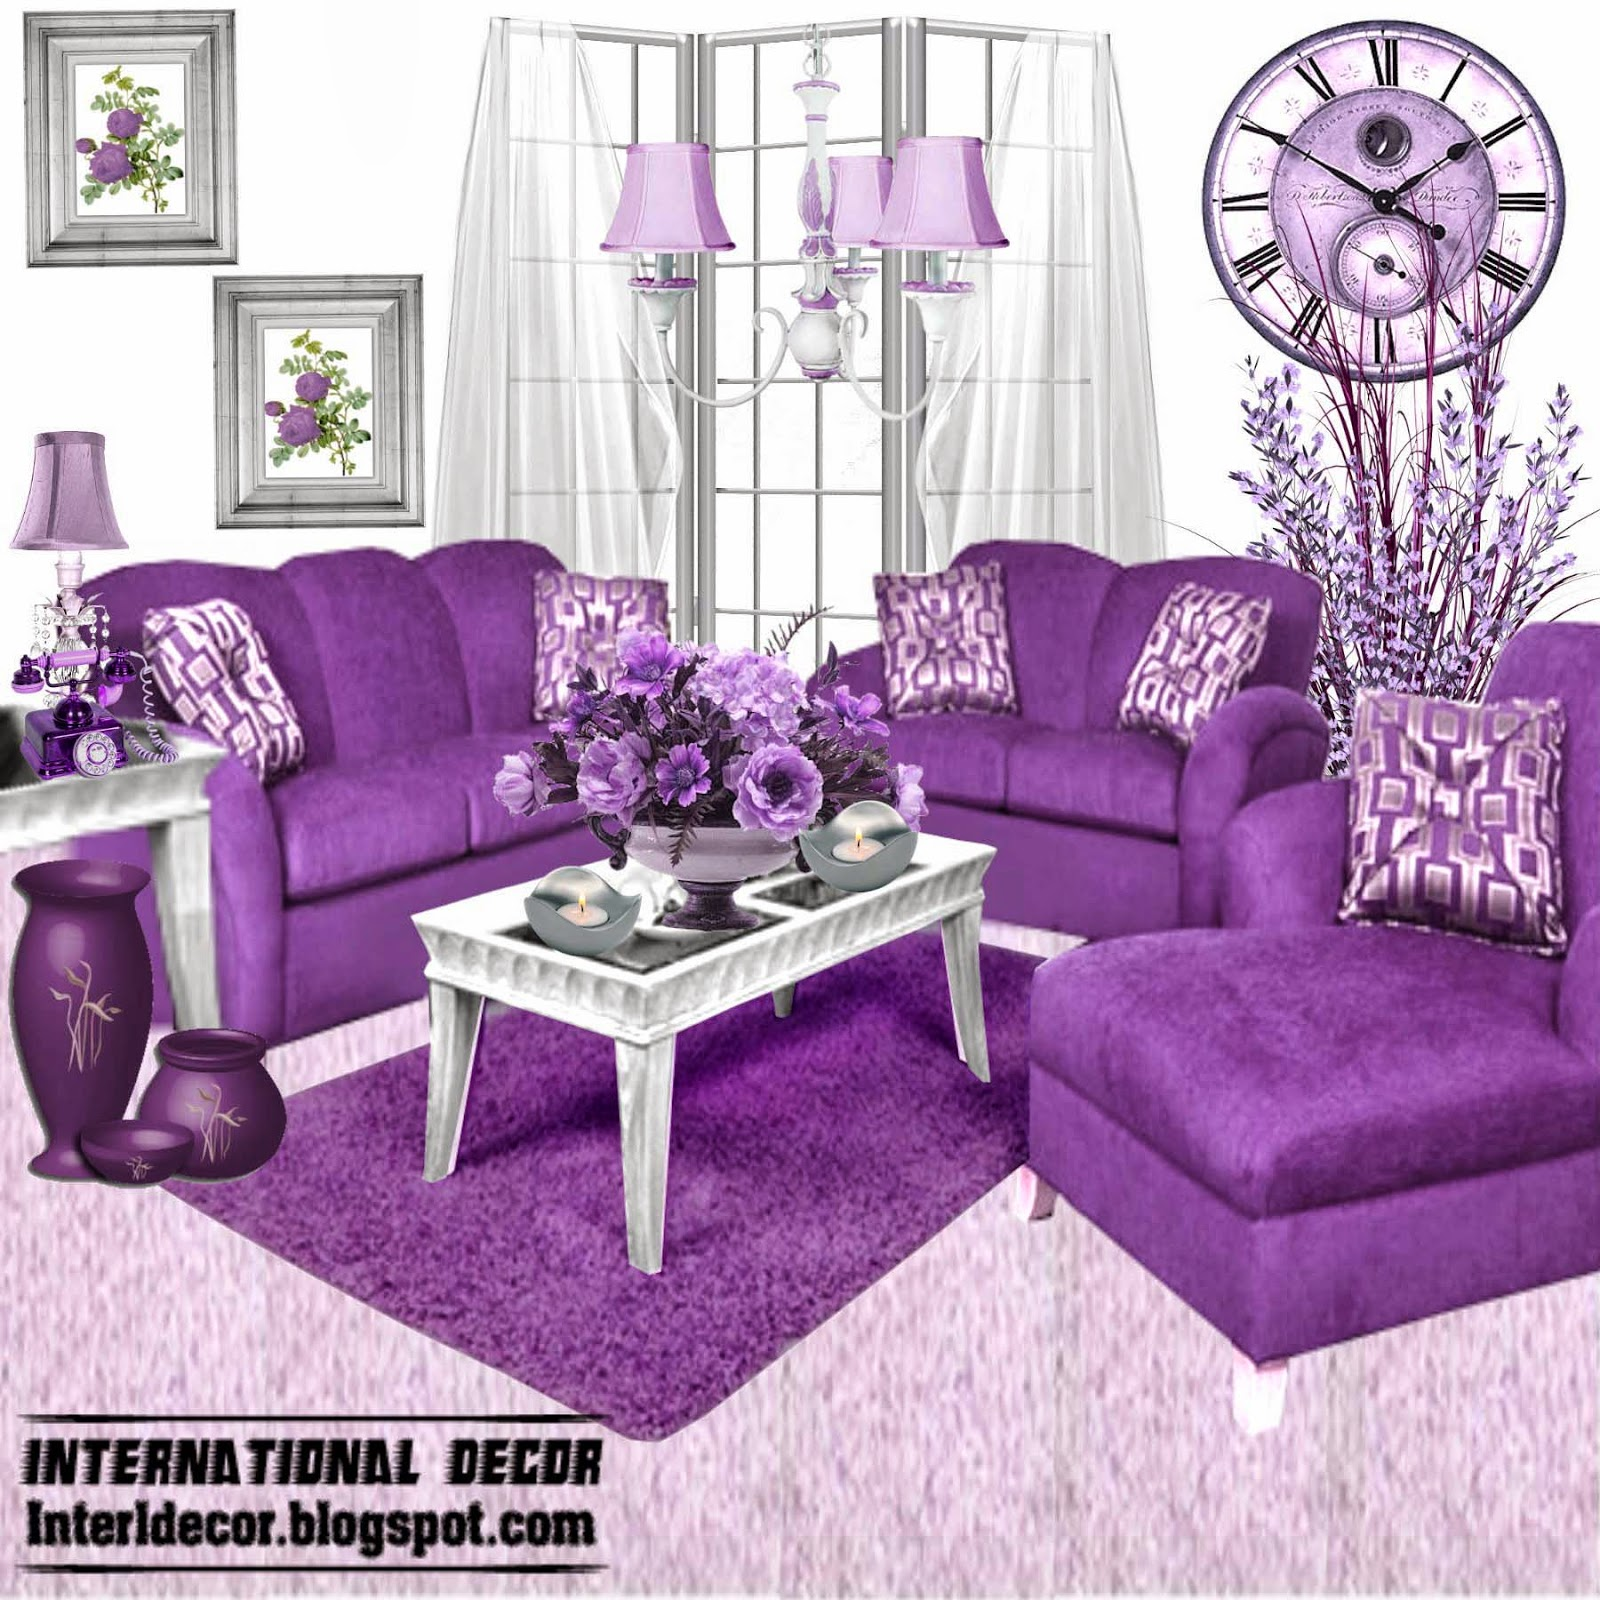 Purple furniture for the home pinterest purple furniture purple and furniture - Living room furnature ...